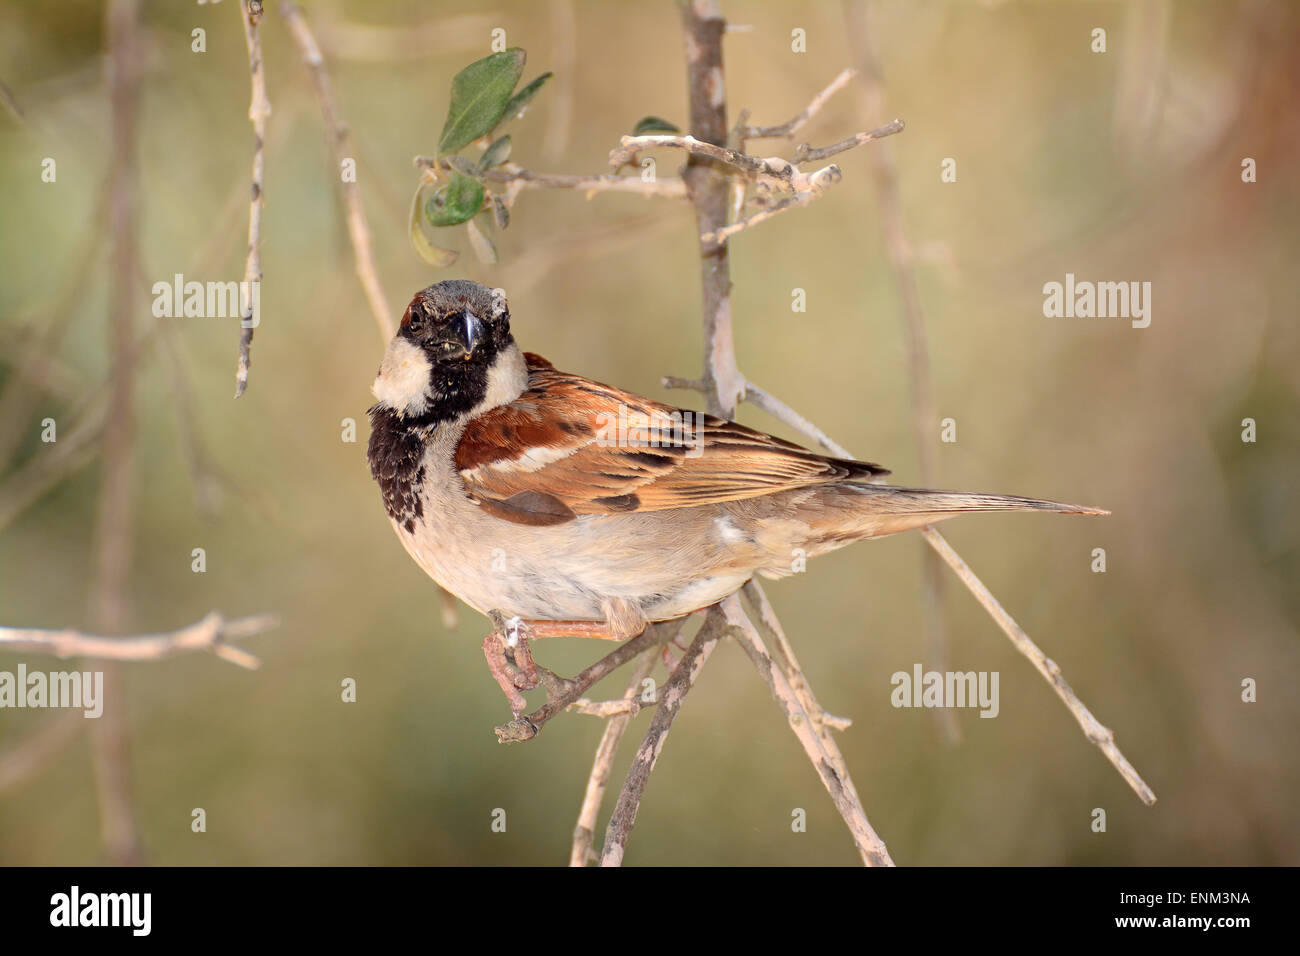 House sparrow on branch - Stock Image